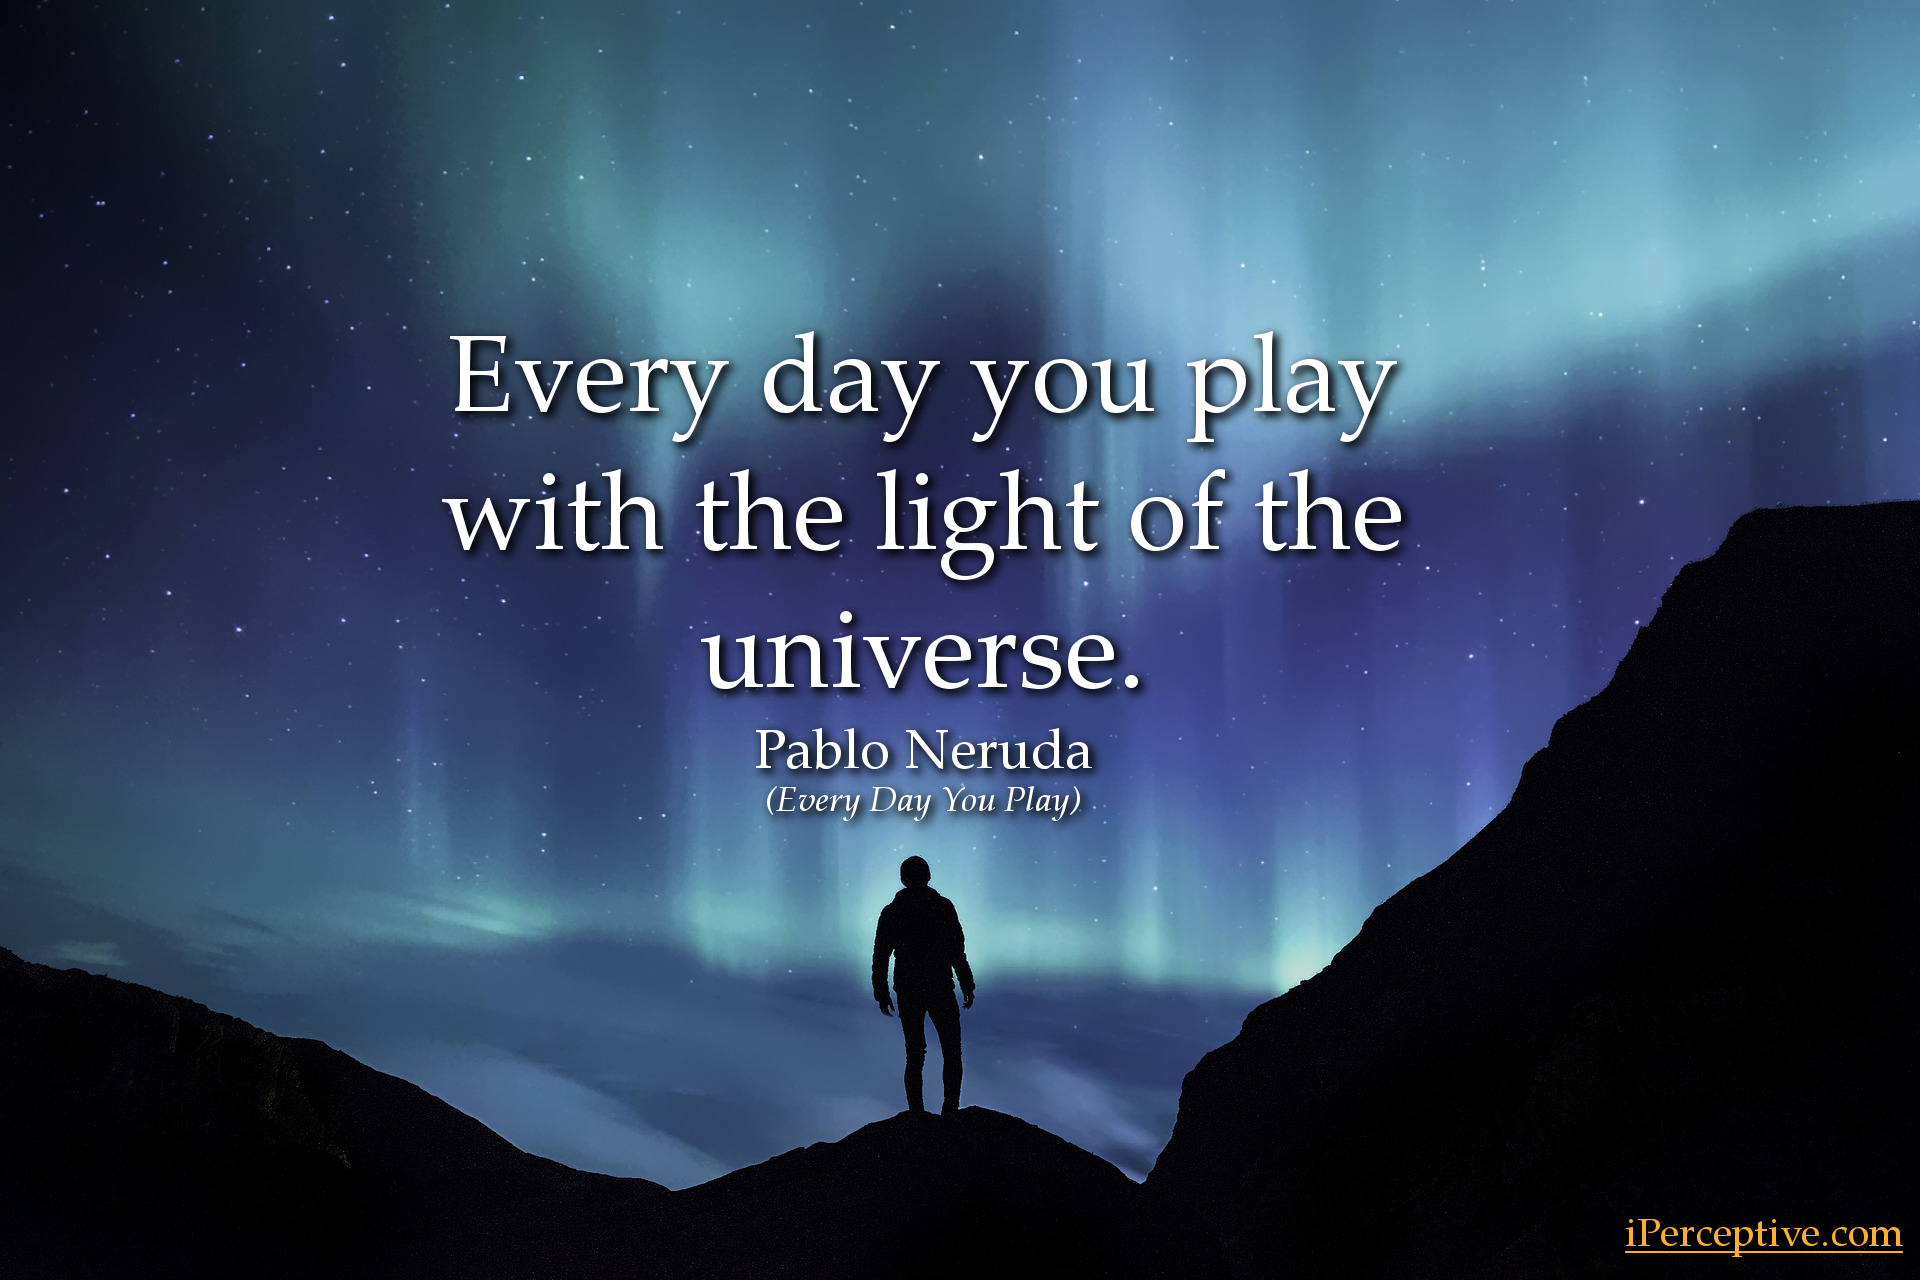 Every day you play with the light of the universe. Pablo Neruda quote